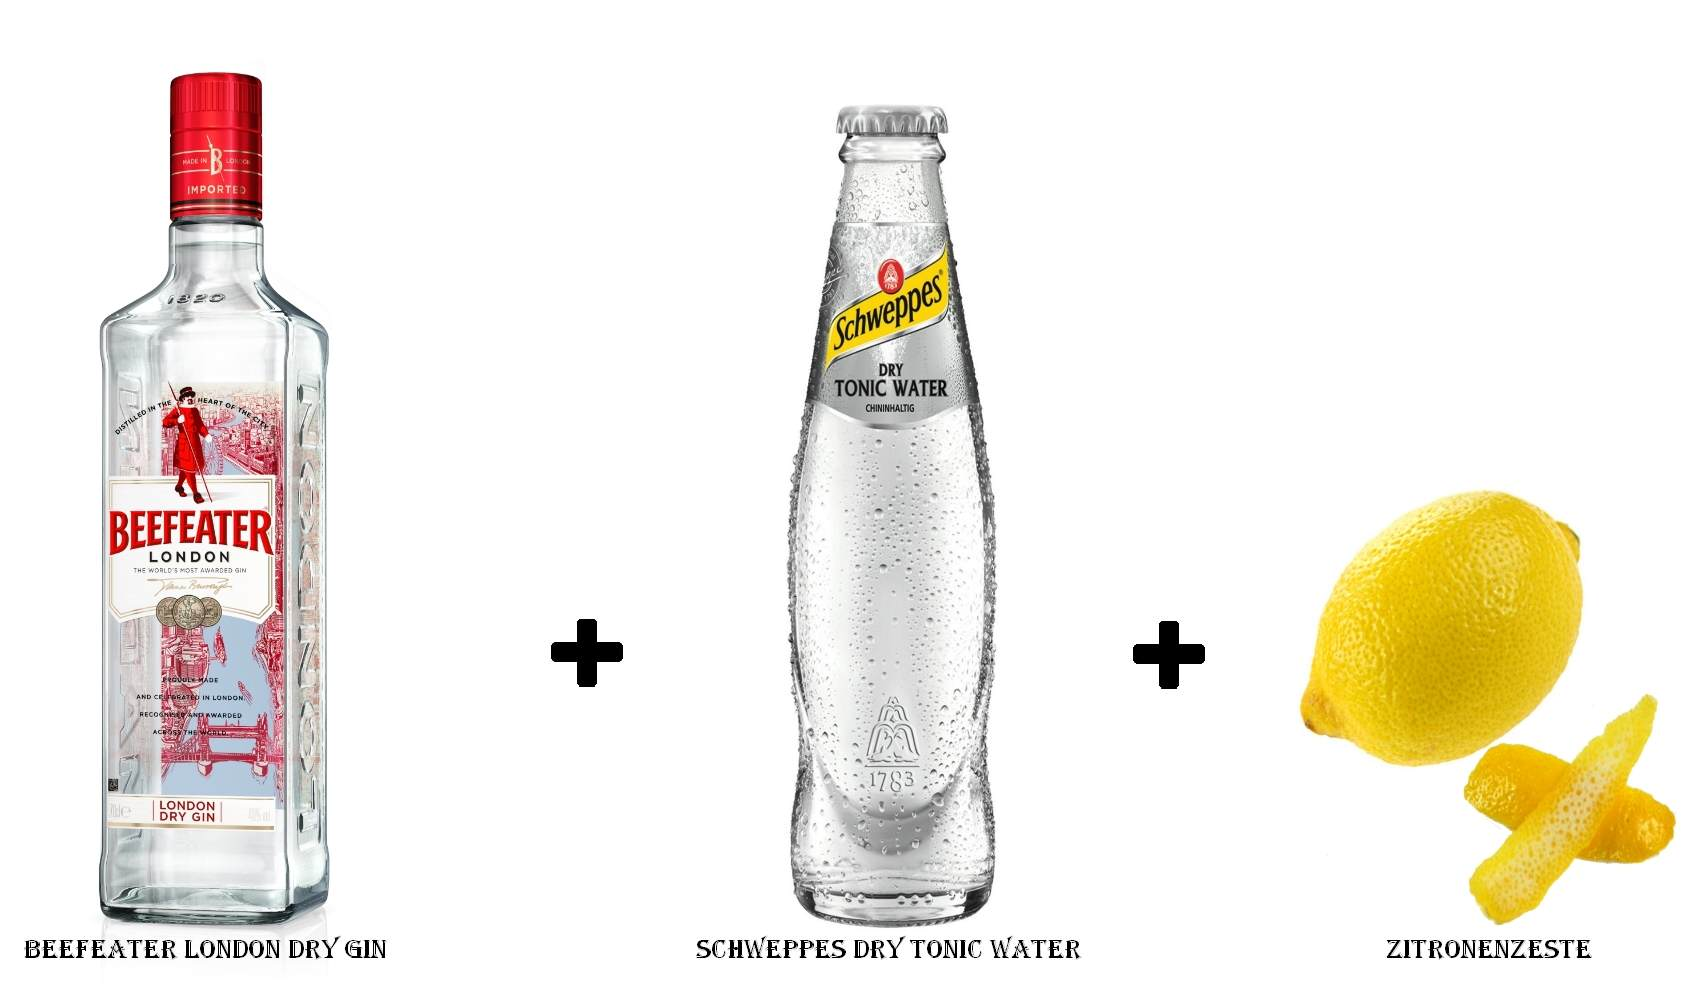 Beefeater London Dry Gin + Schweppes Dry Tonic Water + Zitronenzeste